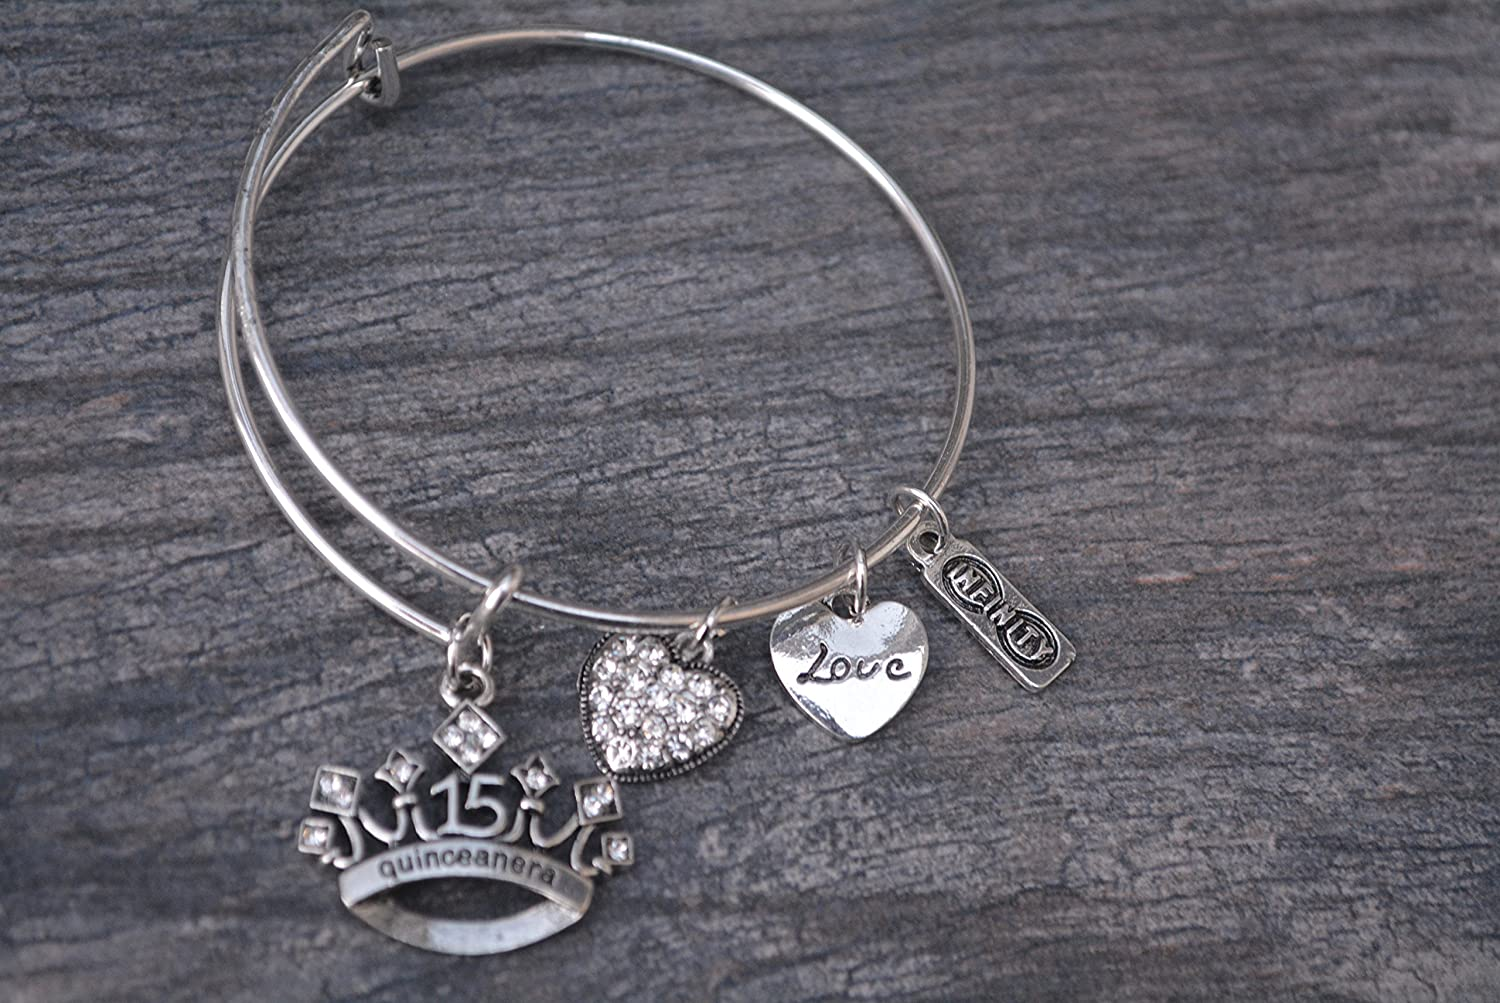 Quinceanera gift /Quinceanera jewelry Girls Sweet 15/Jewelry/ perfetto regalo di compleanno per ragazze Fifteenth Birthday